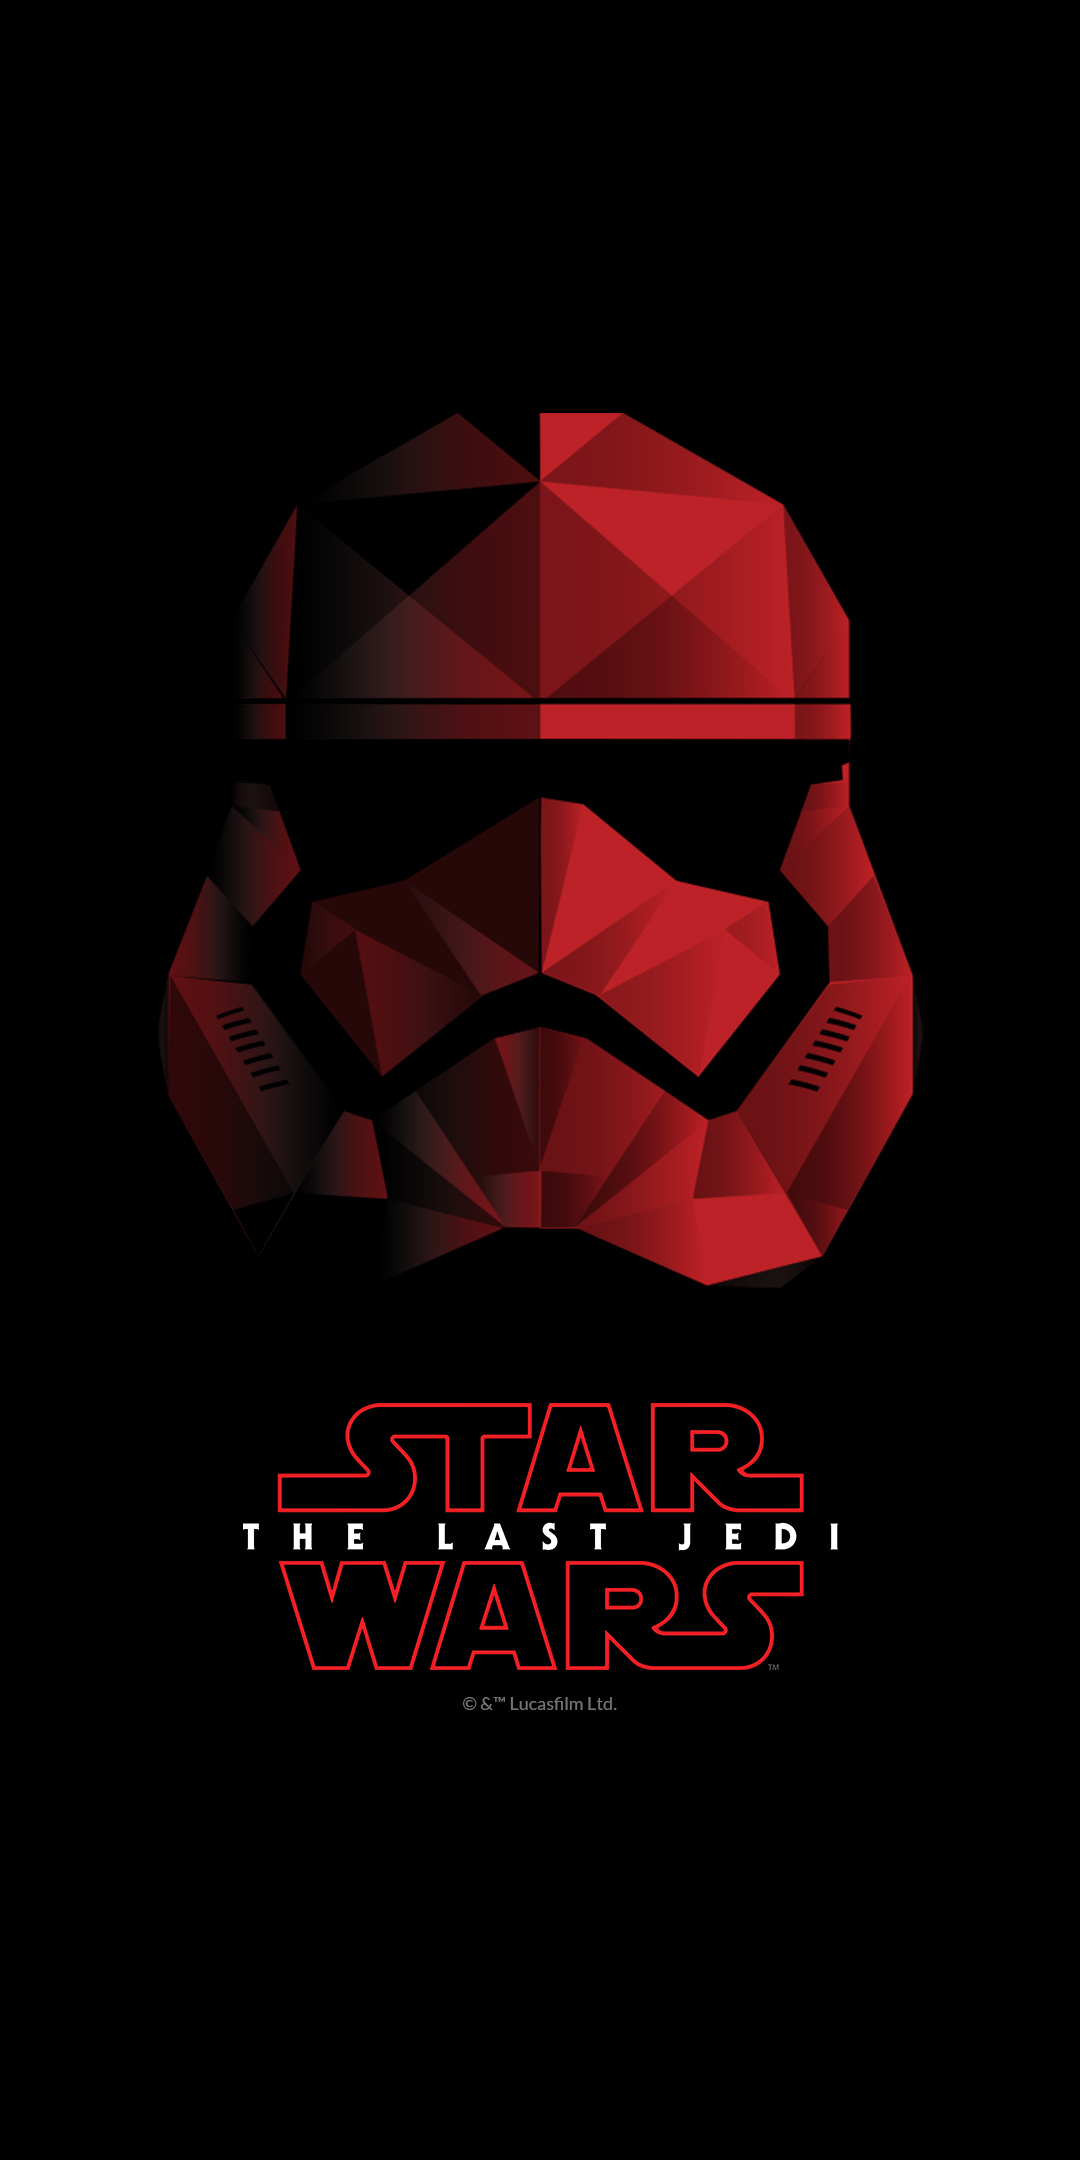 Get All The Star Wars The Last Jedi Wallpapers From The Special